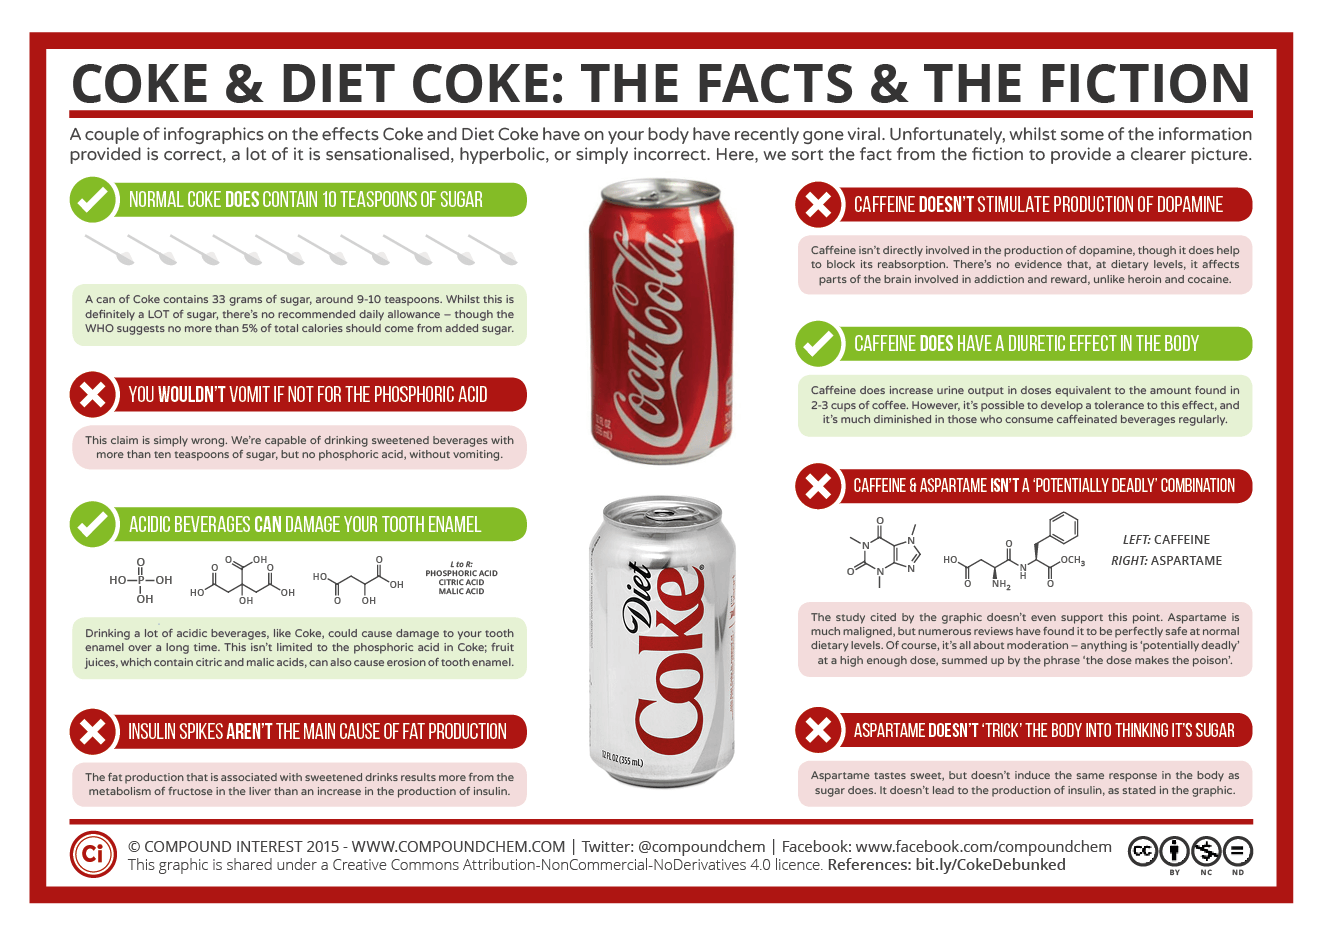 Diet Coke Coke Diet Coke The Facts And The Fiction Compound Interest